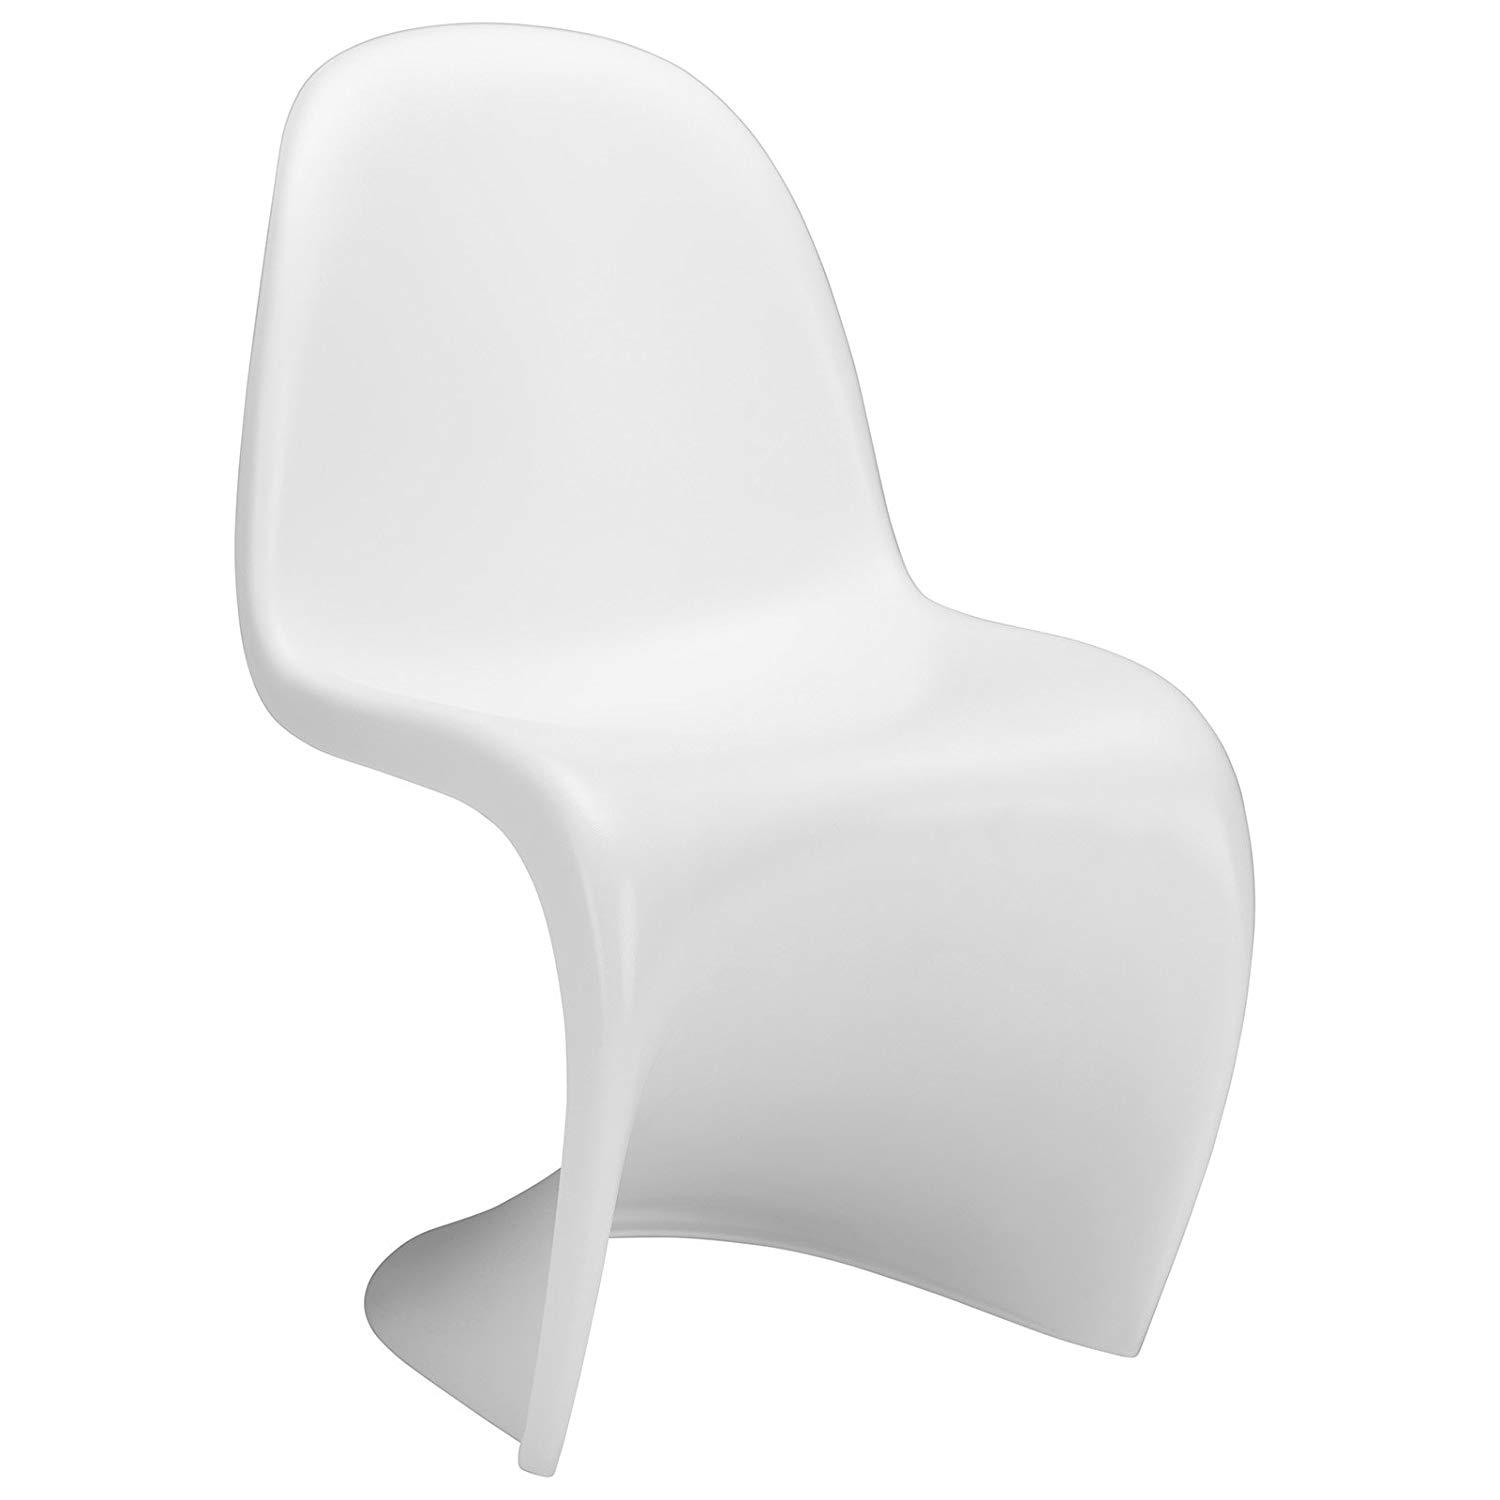 Poly And Bark Panton S Chair, White With Regard To Poly And Bark Rocking Chairs Lounge Chairs In Black (#11 of 20)